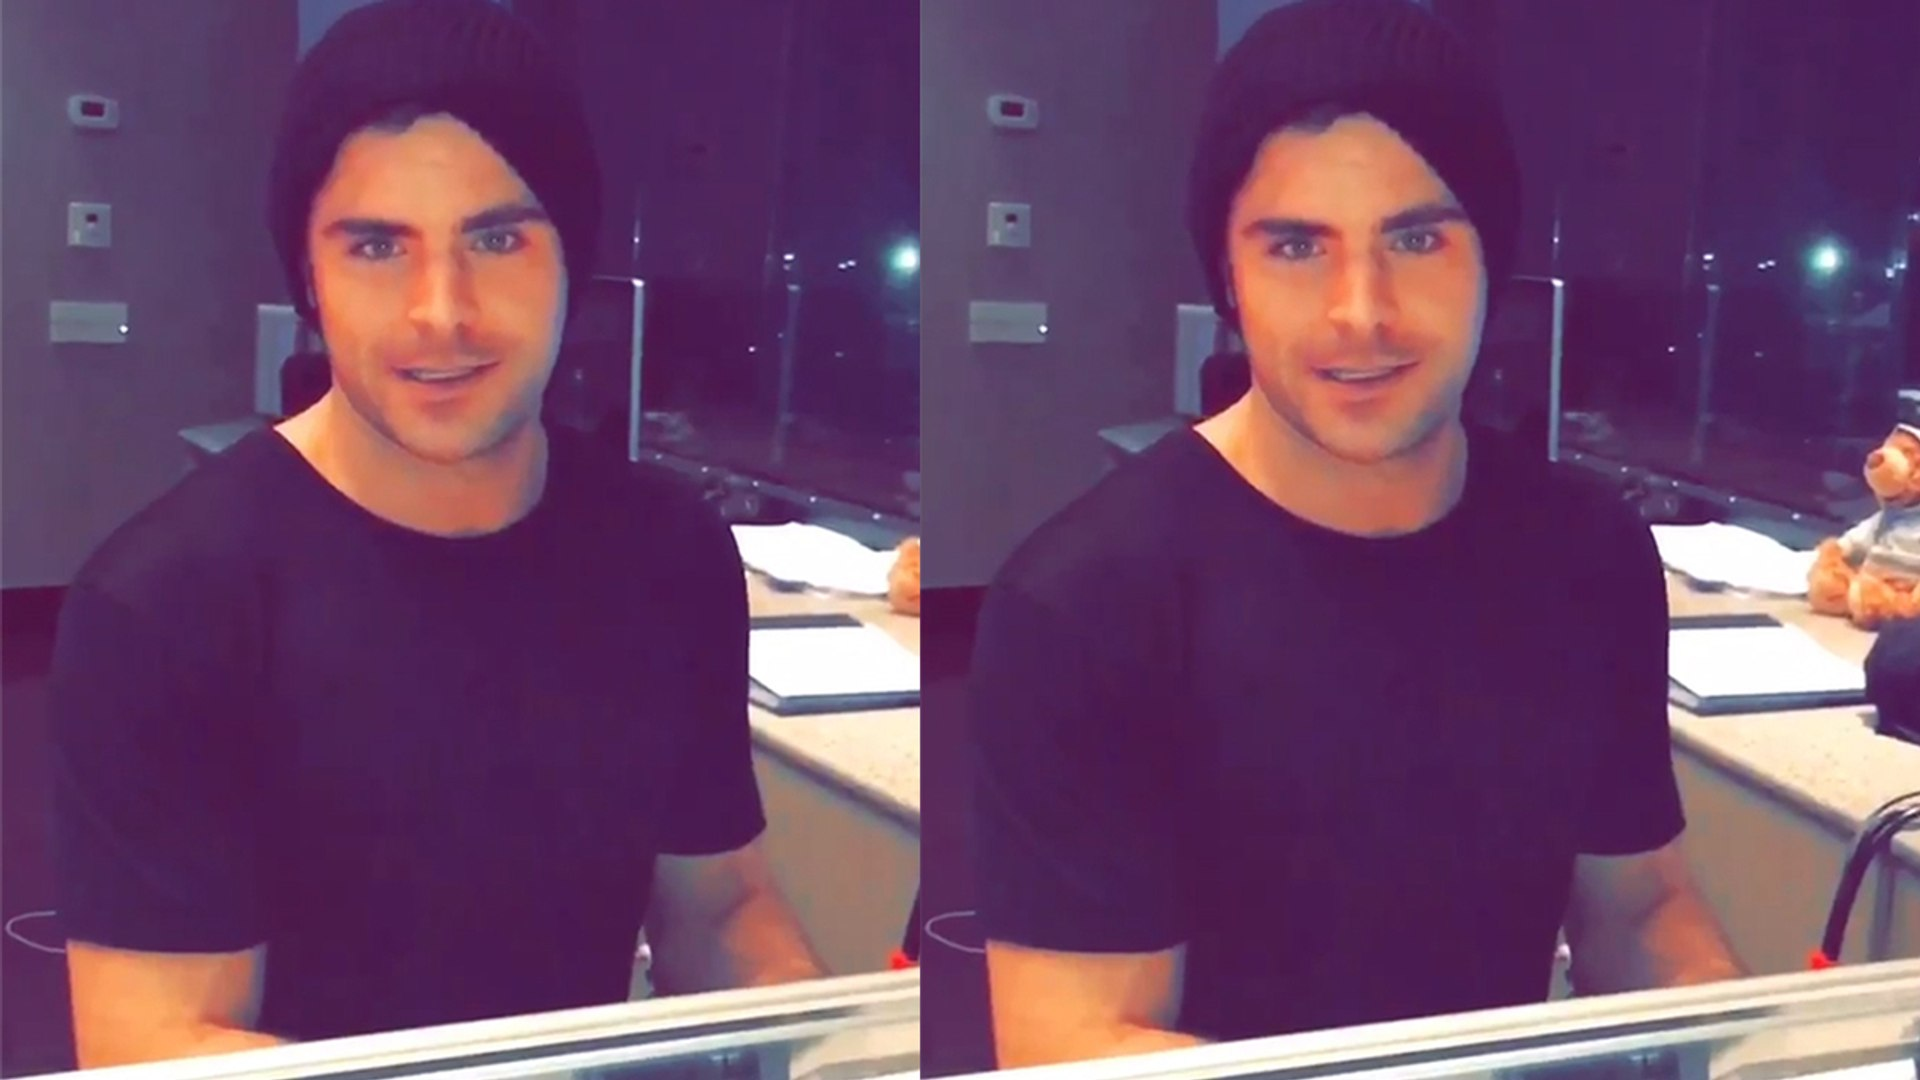 Zac Efron Sings 'Happy Birthday' To Adam Devine and Plays Piano